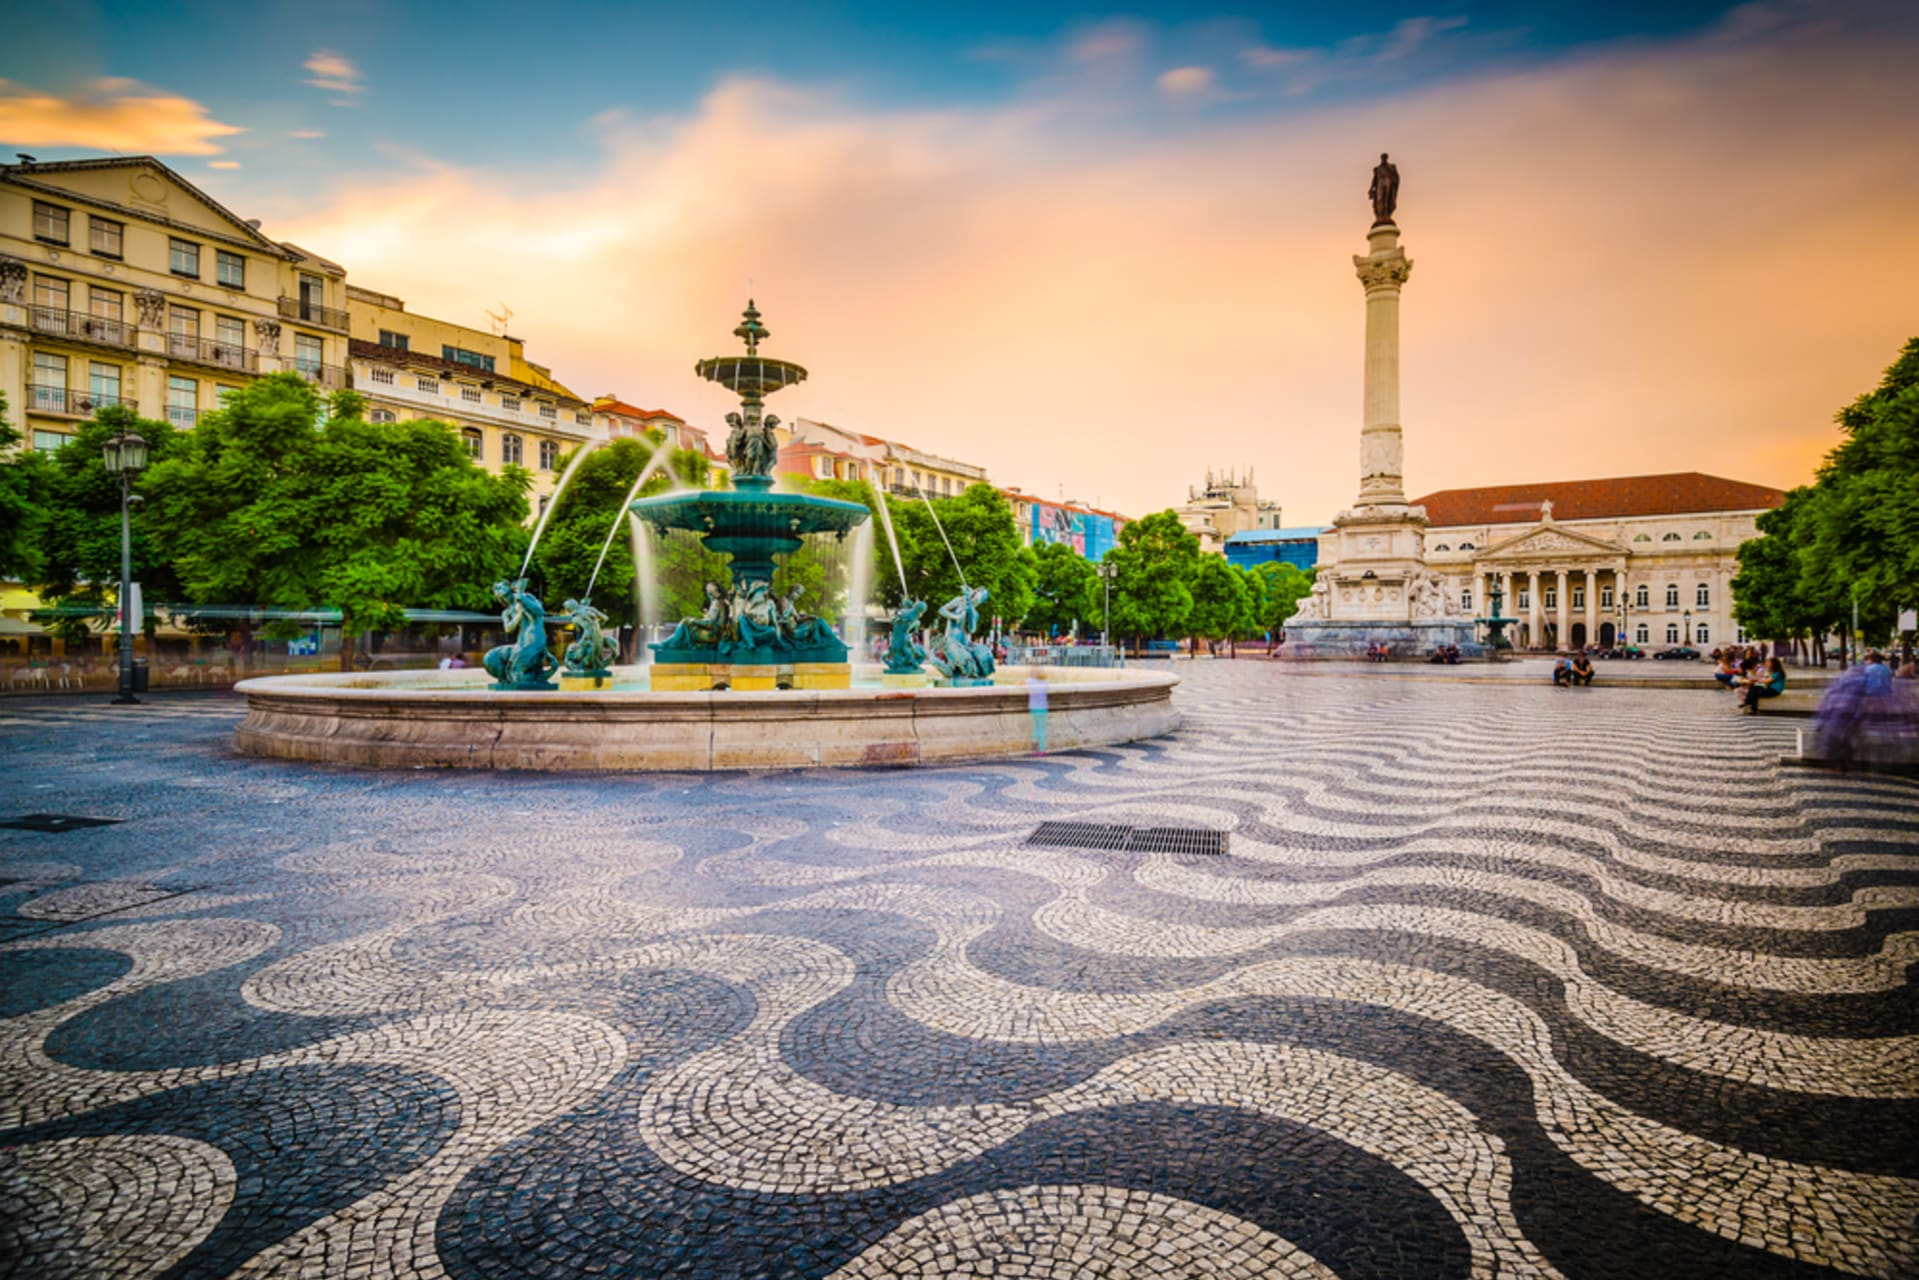 Lisbon - Rossio Square - 2000 years of history